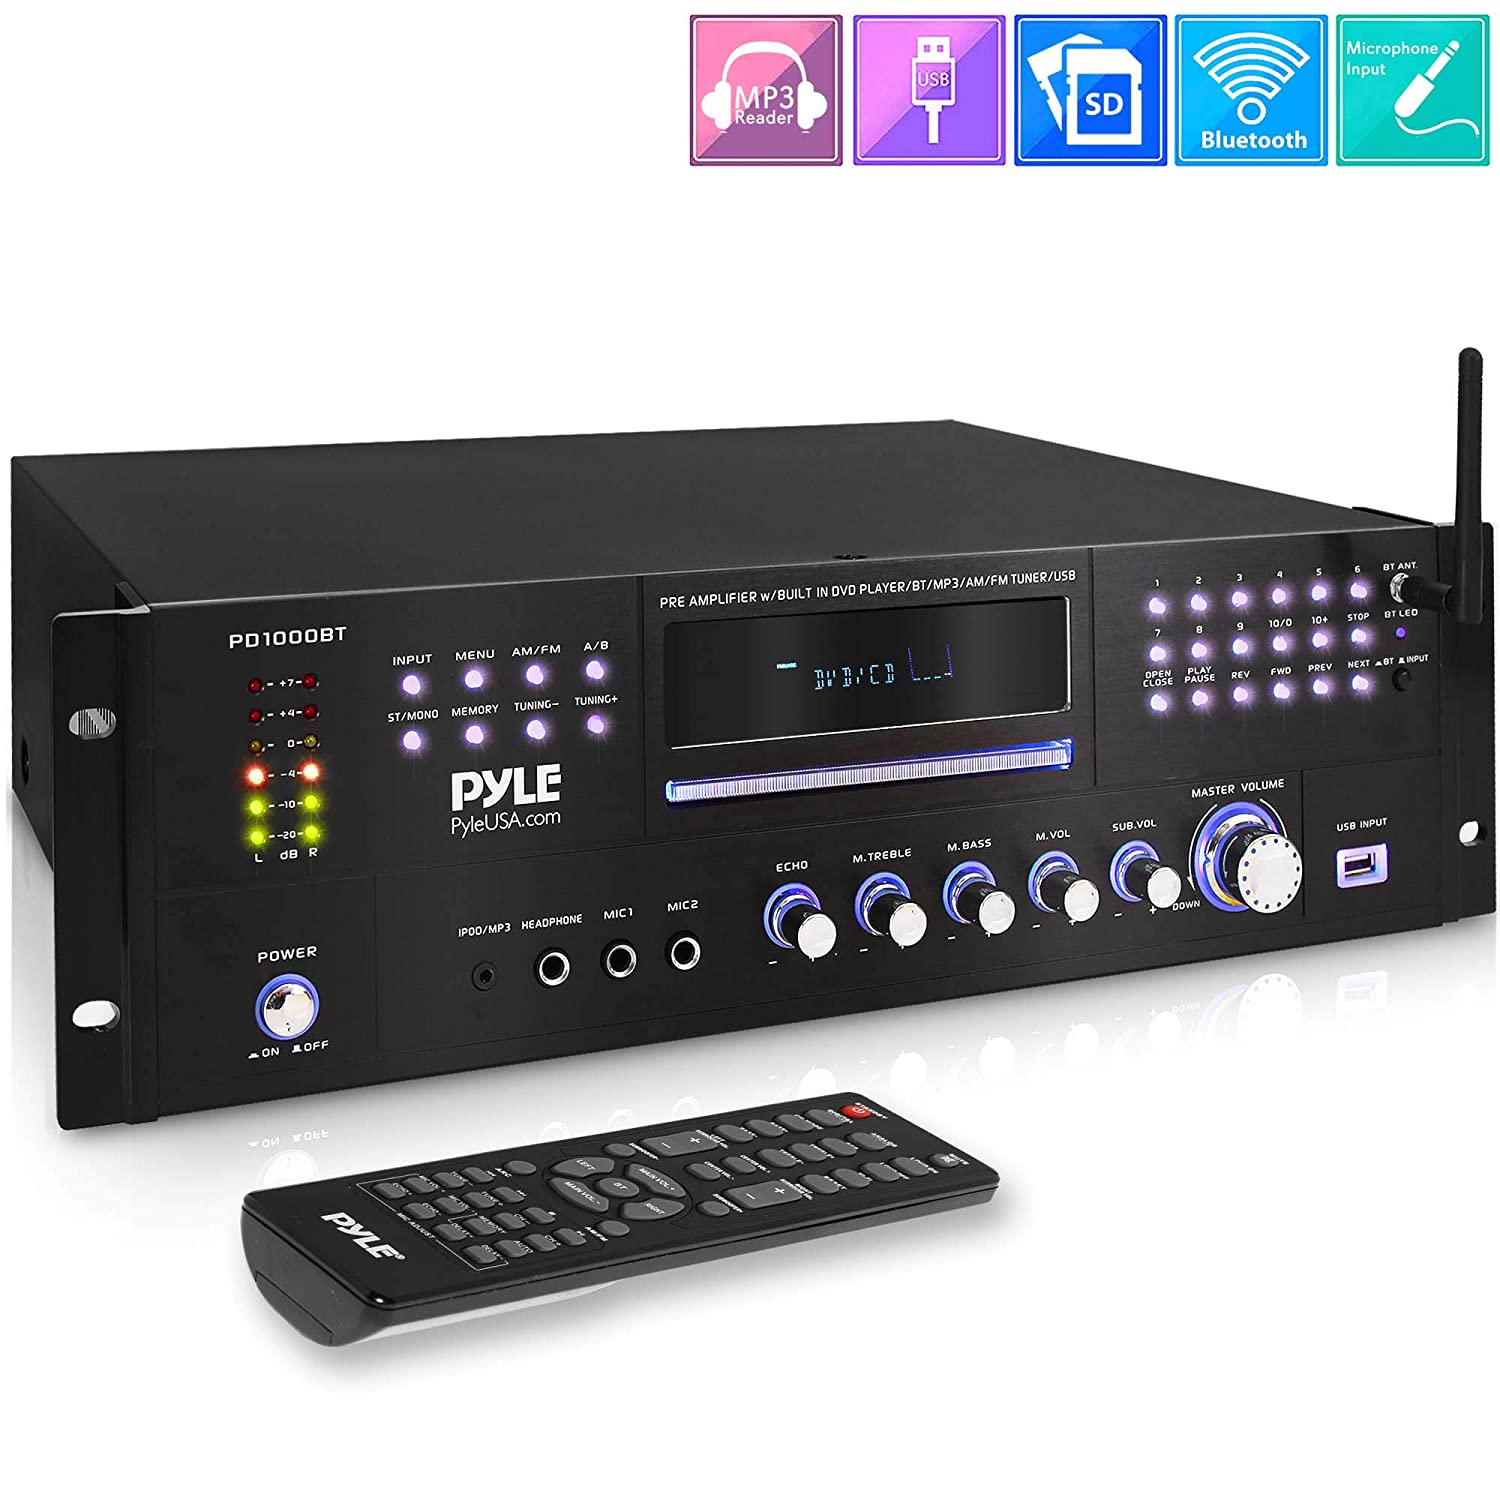 1000W Stereo Speaker Home Audio Receiver - 4 Channel Wireless Bluetooth Power Amplifier w/USB, Headphone, FM Radio, 2 Microphone w/Echo, Front Loading CD DVD Player, LED, Rack Mount - Pyle PD1000BT